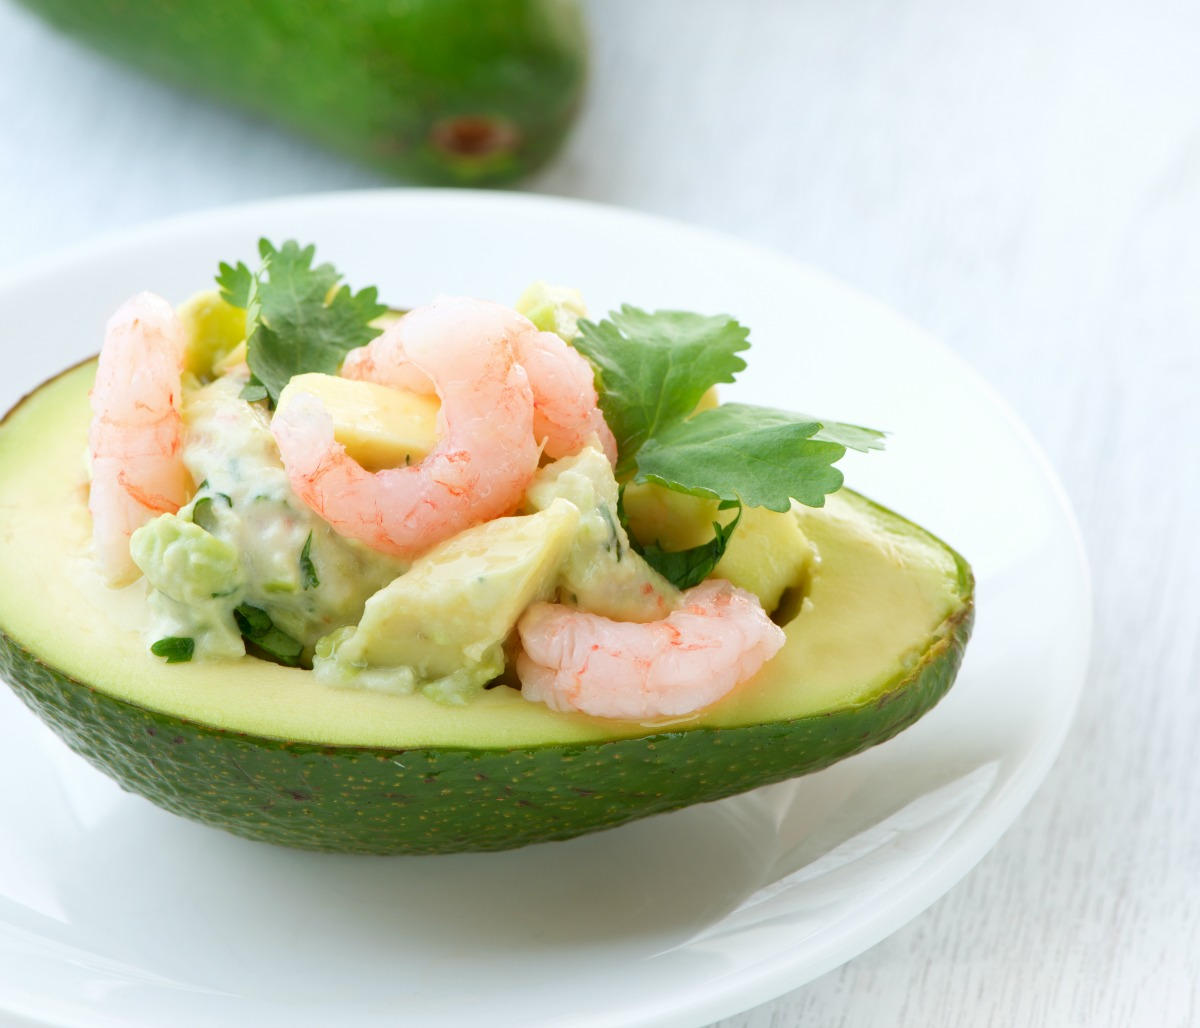 Diabetic Friendly Stuffed Avocados